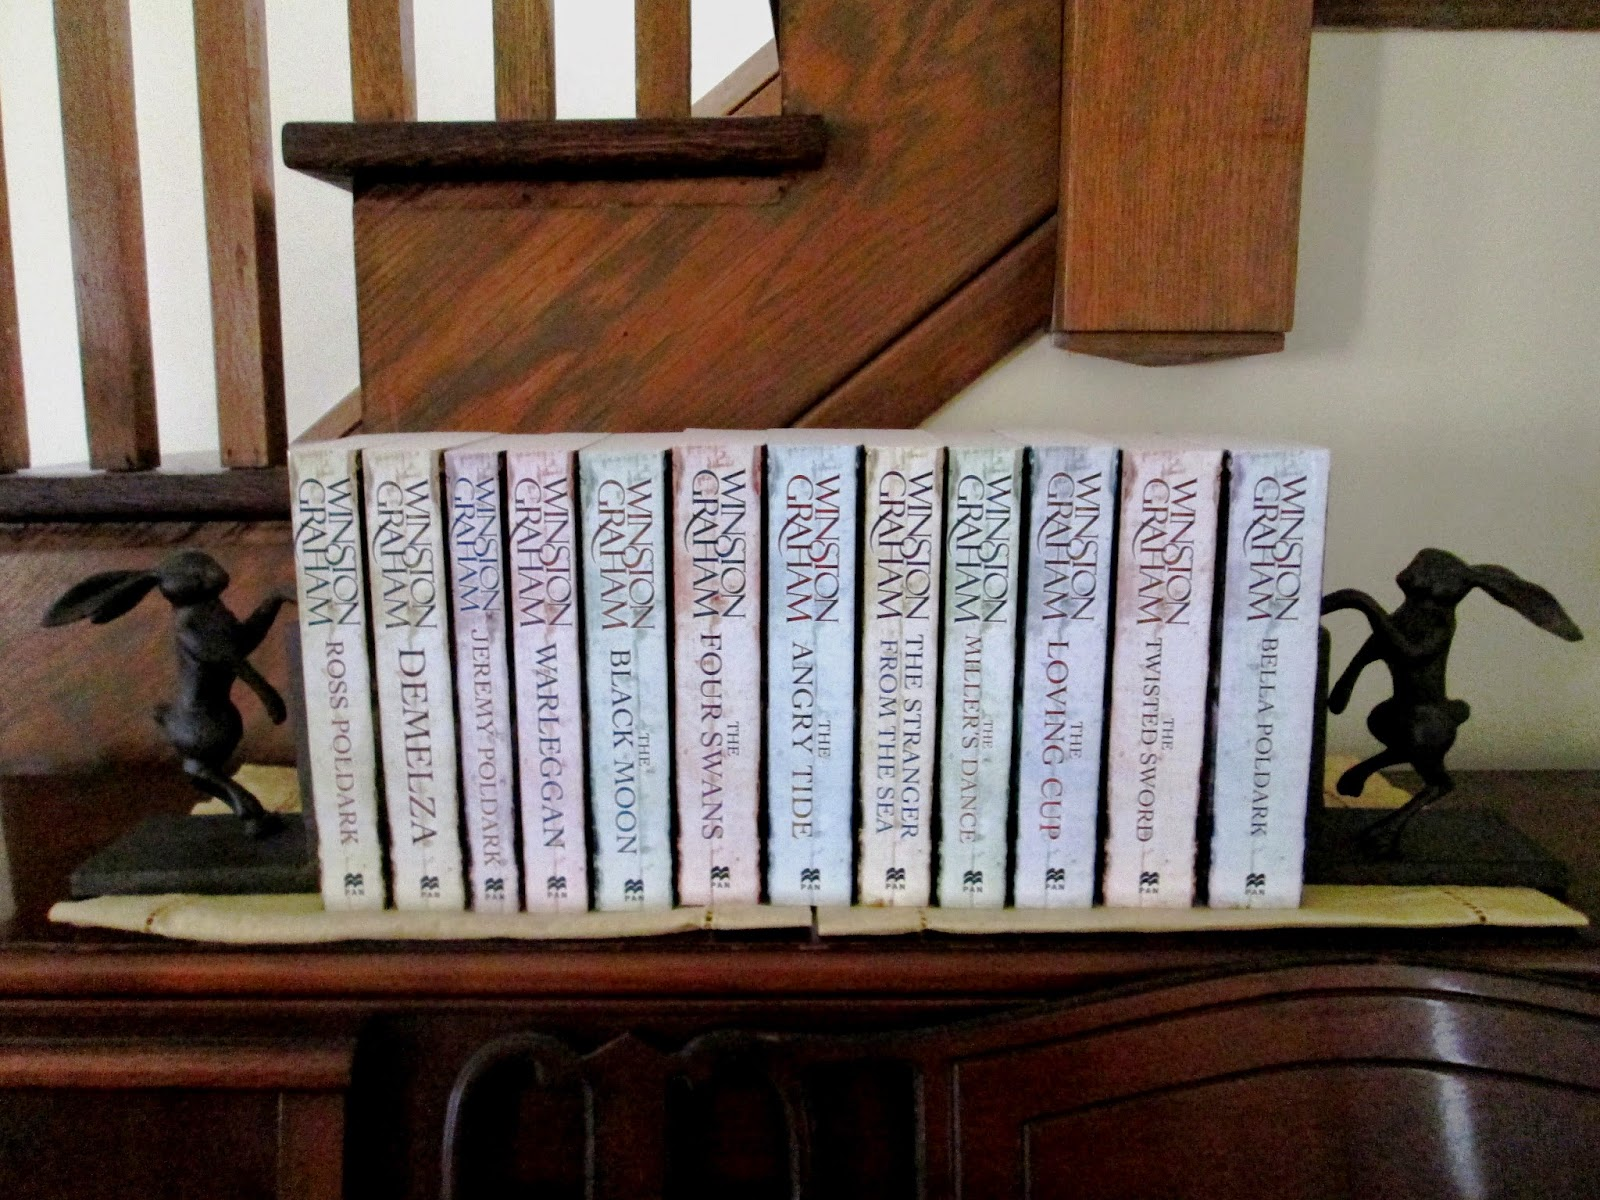 Poldark books in order - The Wild Reed